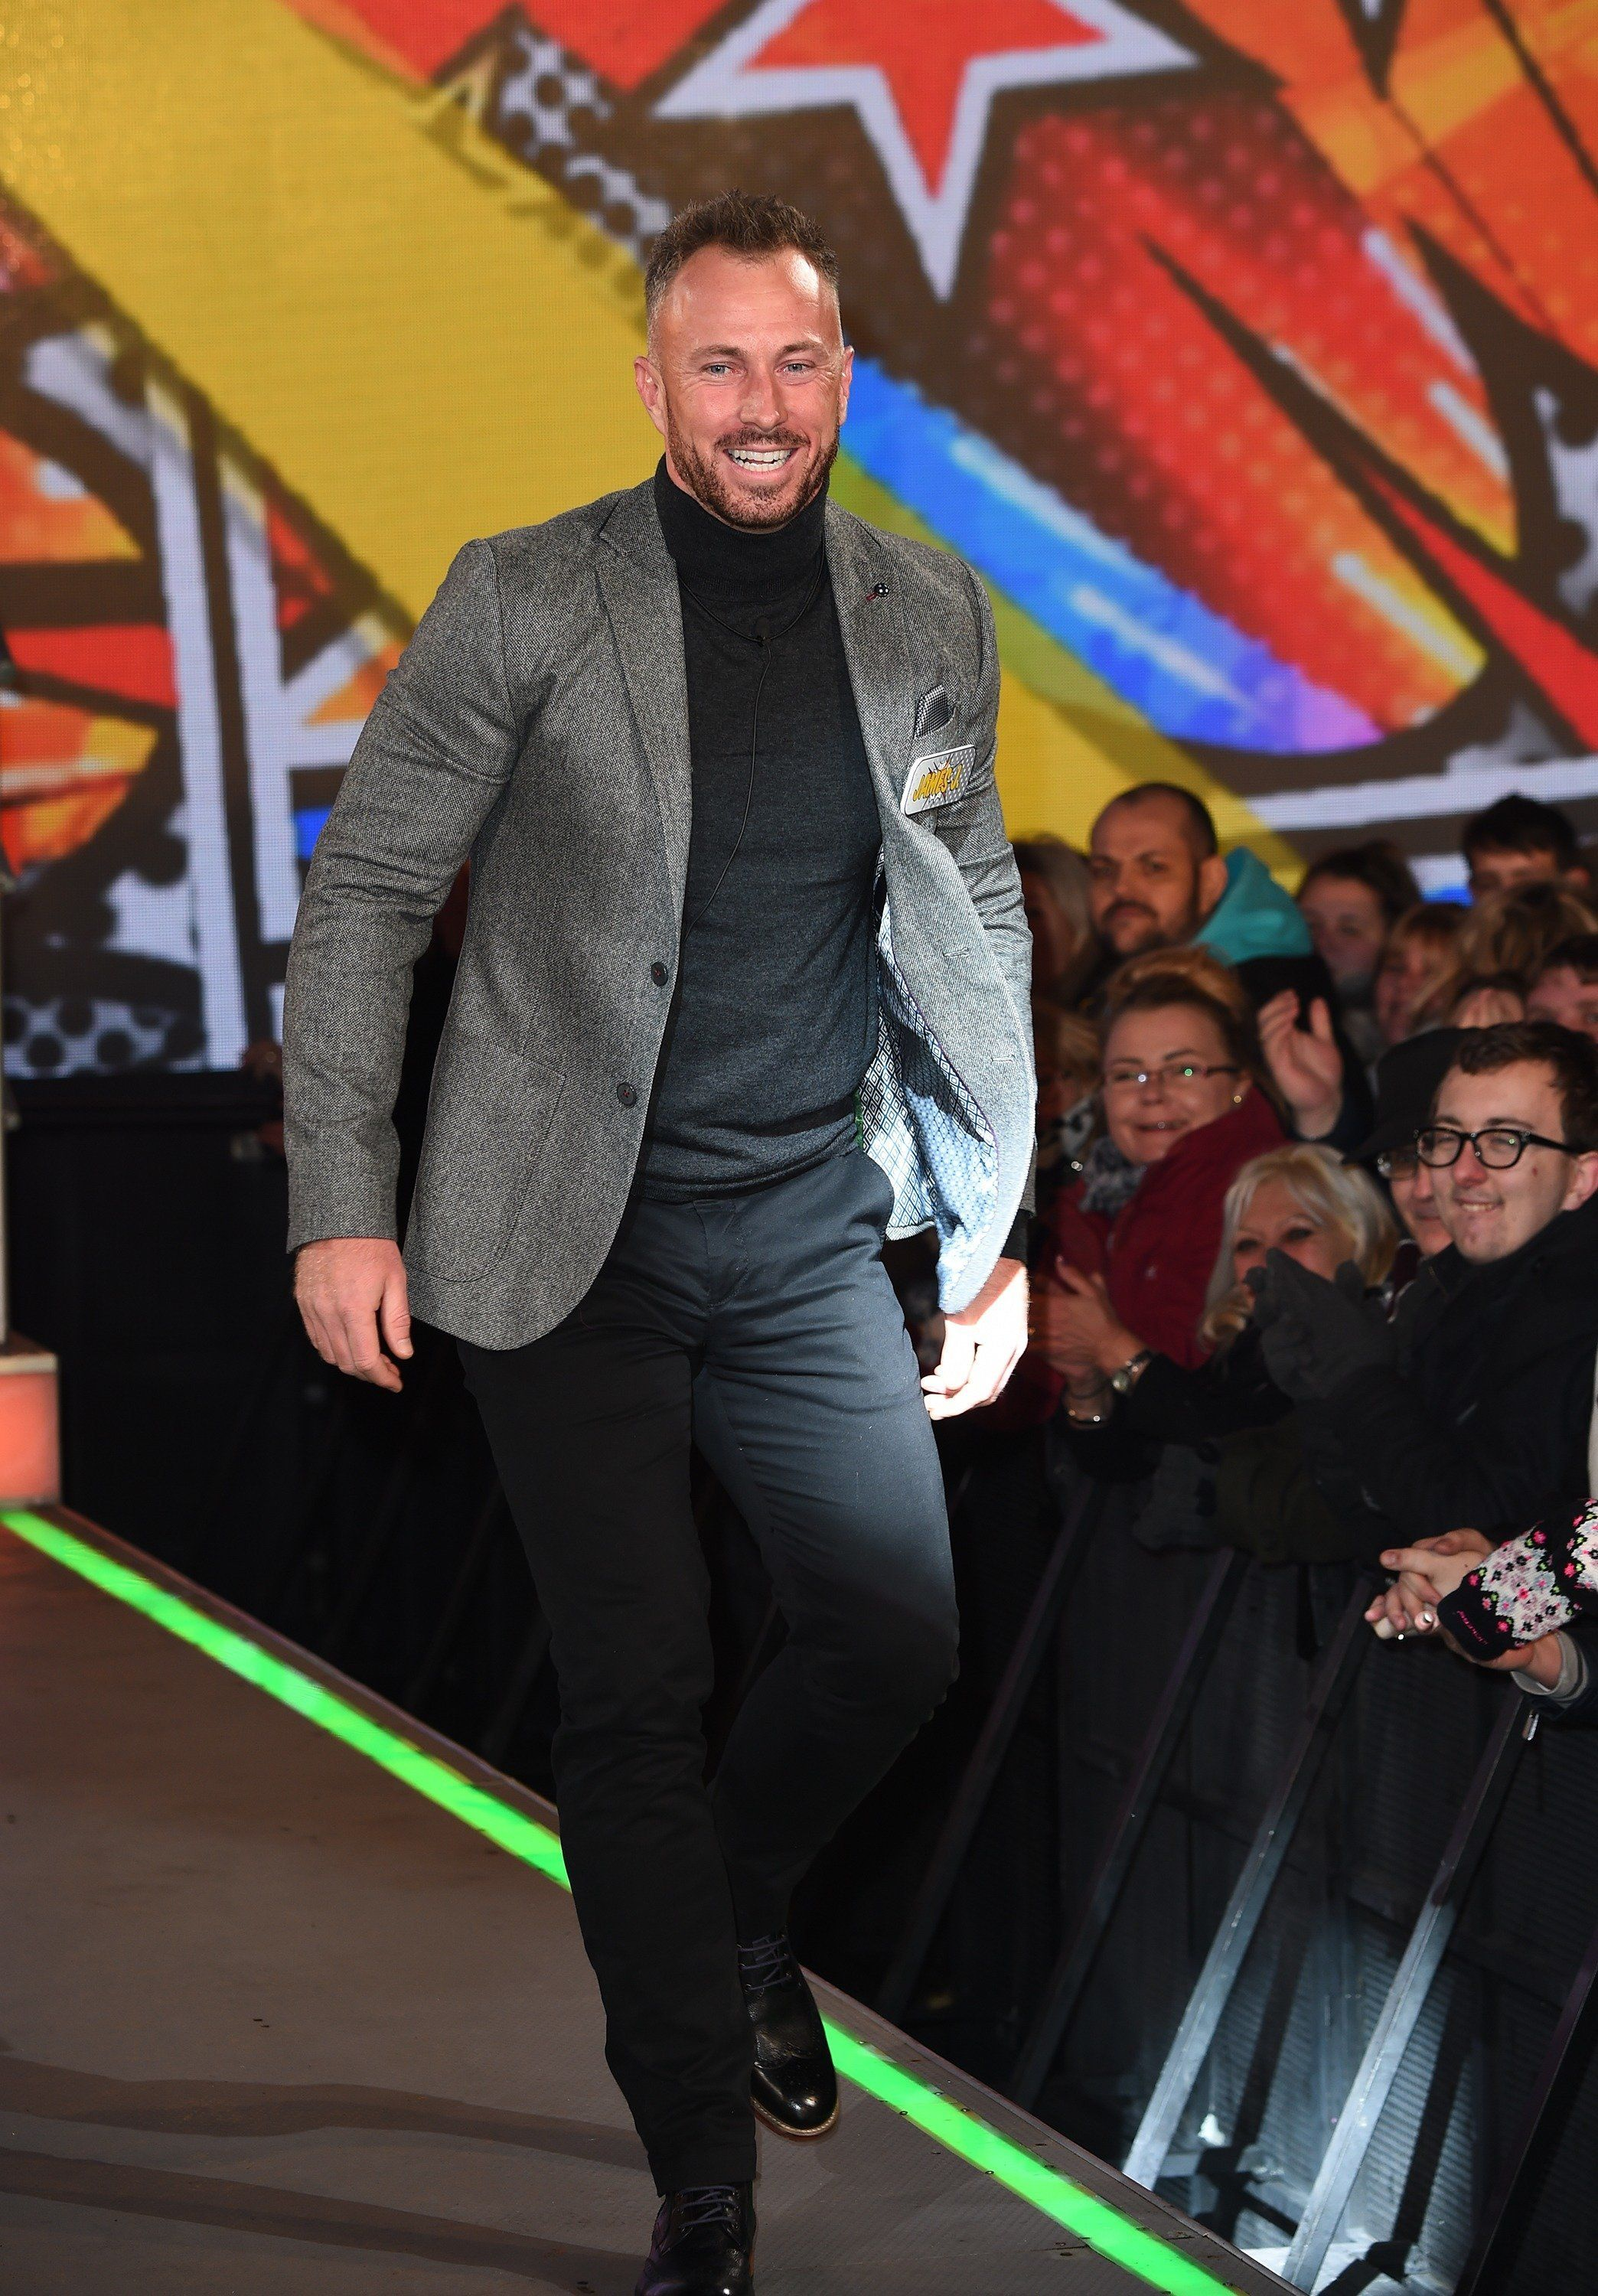 James Jordan Tells 'Strictly Come Dancing' Judges They 'Should Be